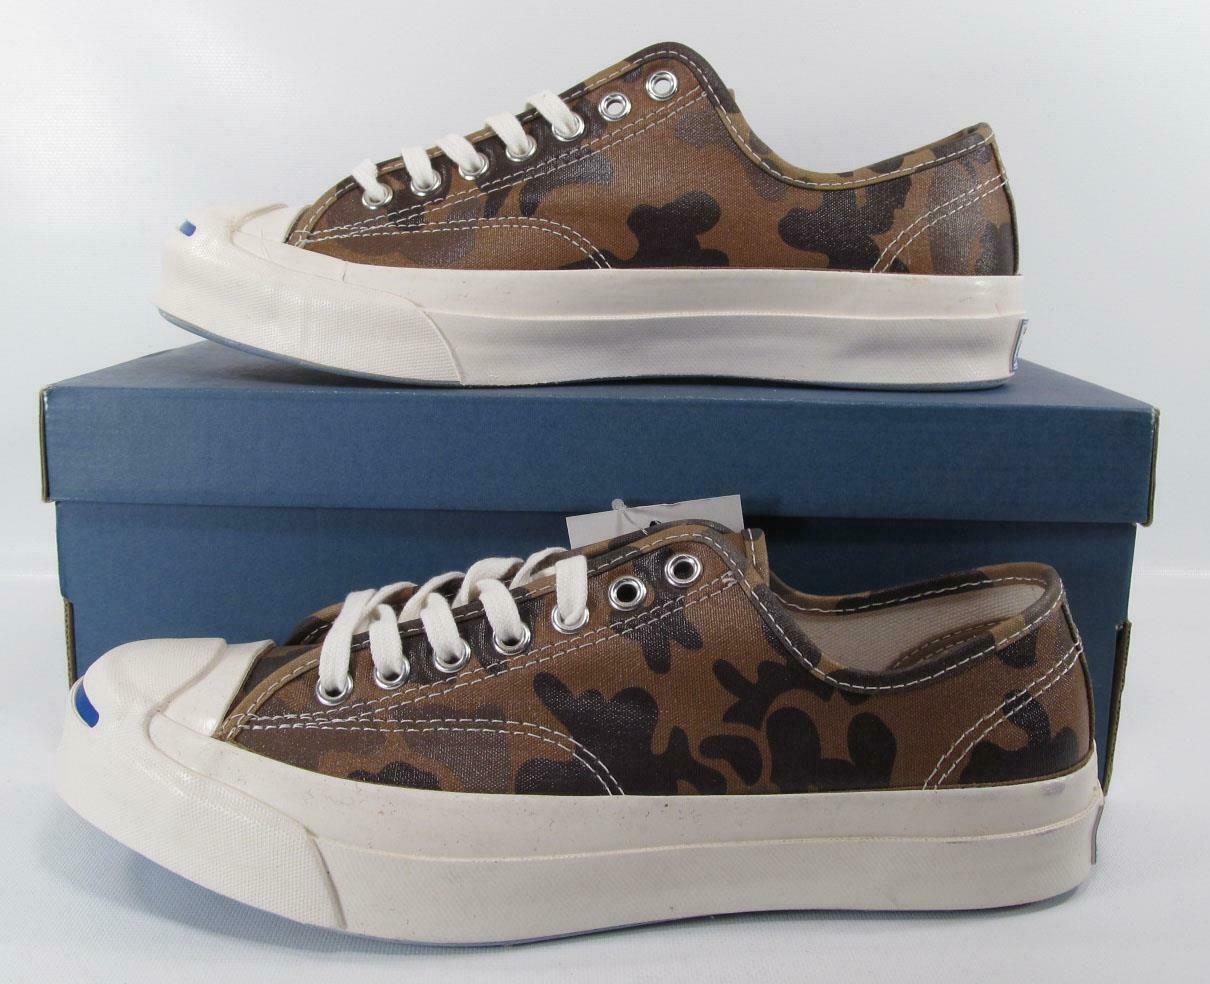 Converse Jack Purcell Signature Ox SAND DUNE CAMO Waxed Nylon 151457C (7 MEN)